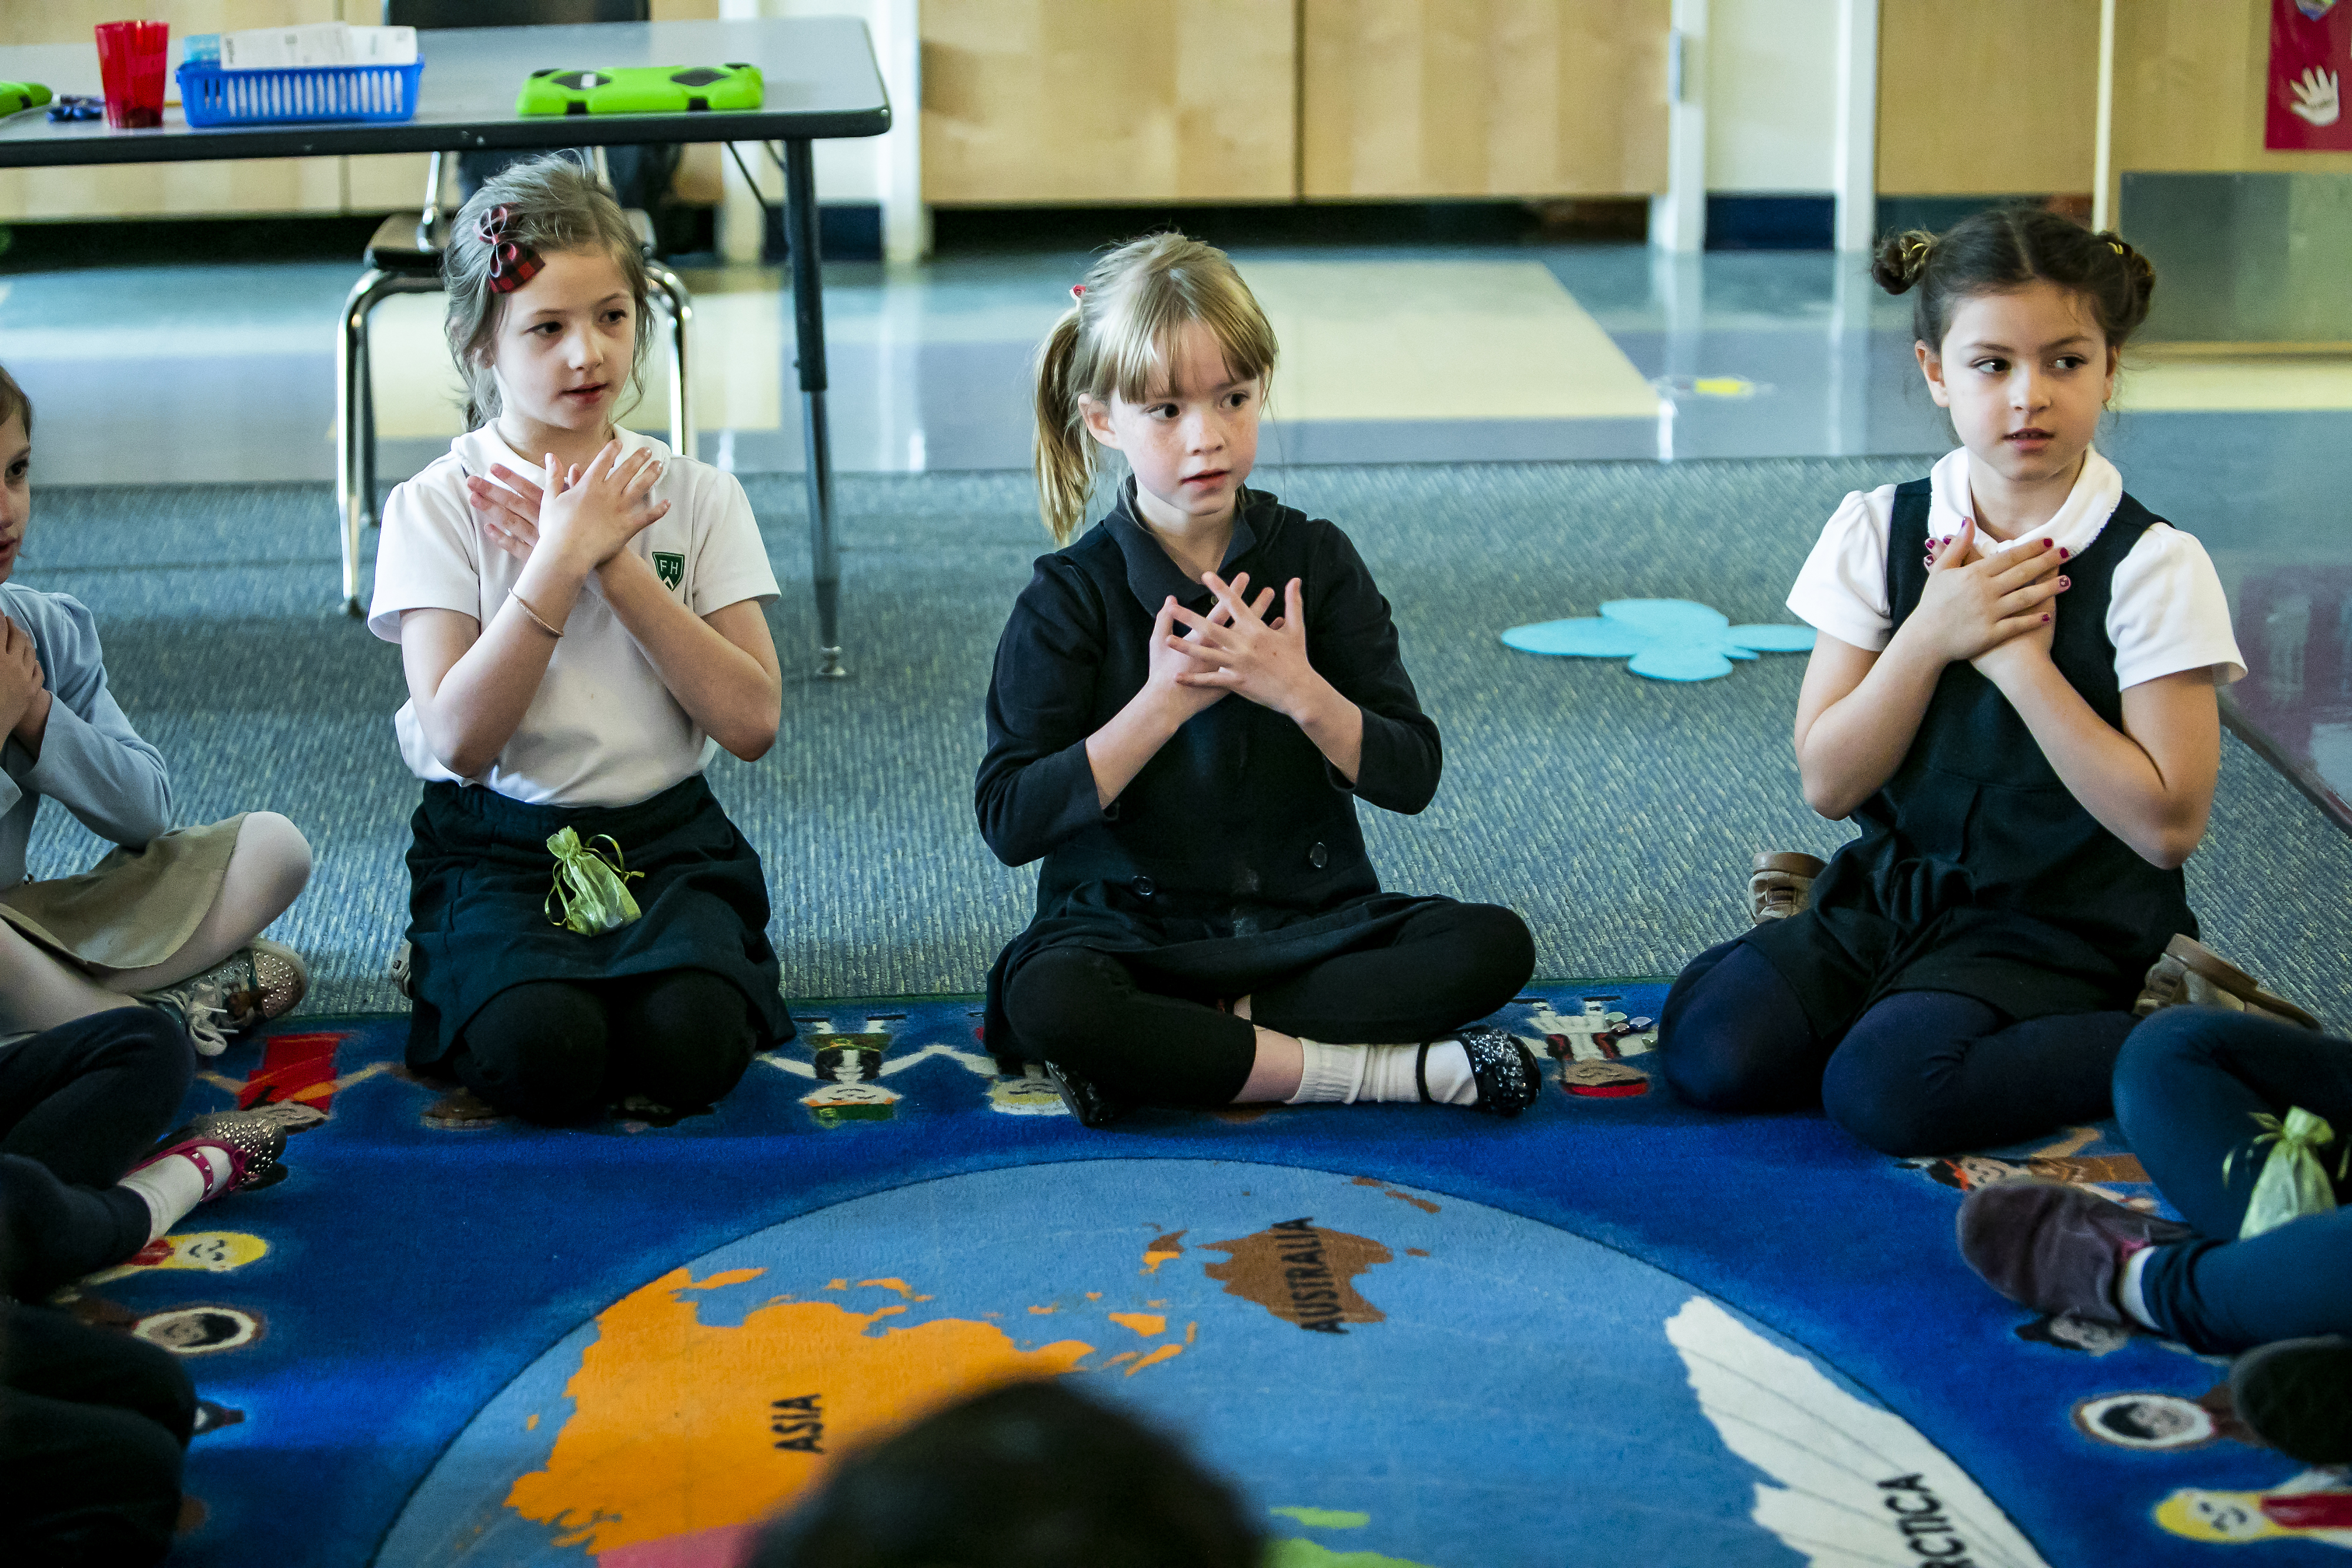 Grade 2 students participating in moment of mindfulness